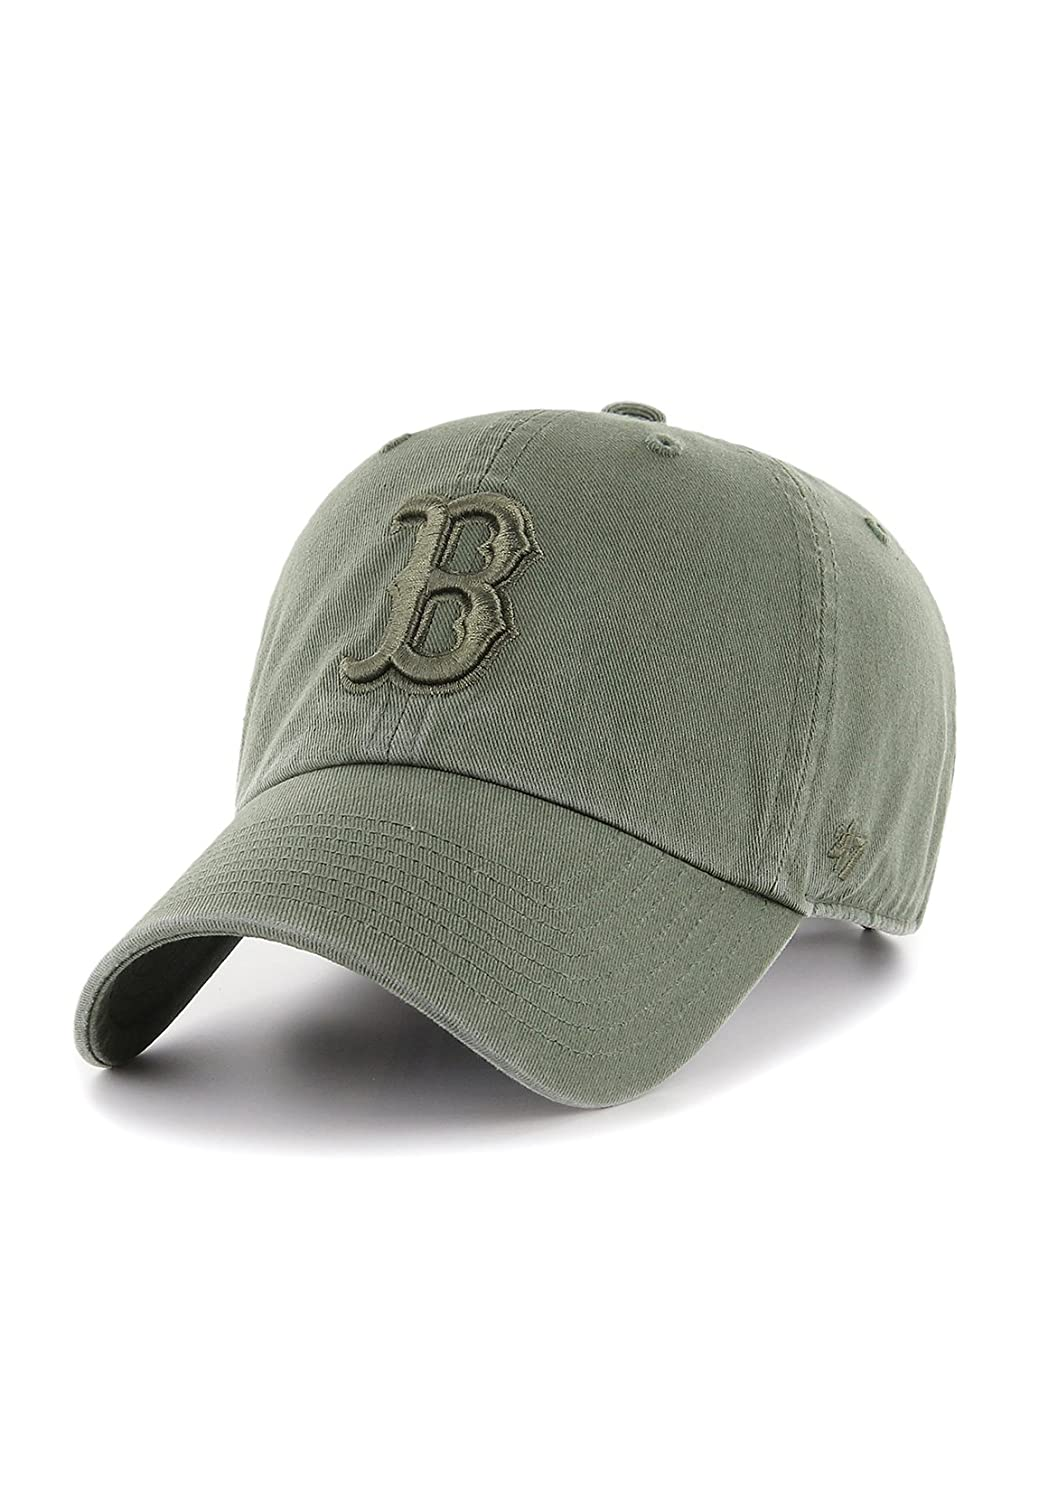 Gorra de béisbol Clean Up Boston Red Sox de 47 Brand - Verde Oscuro -  Ajustable  Amazon.es  Ropa y accesorios 92104d977fc